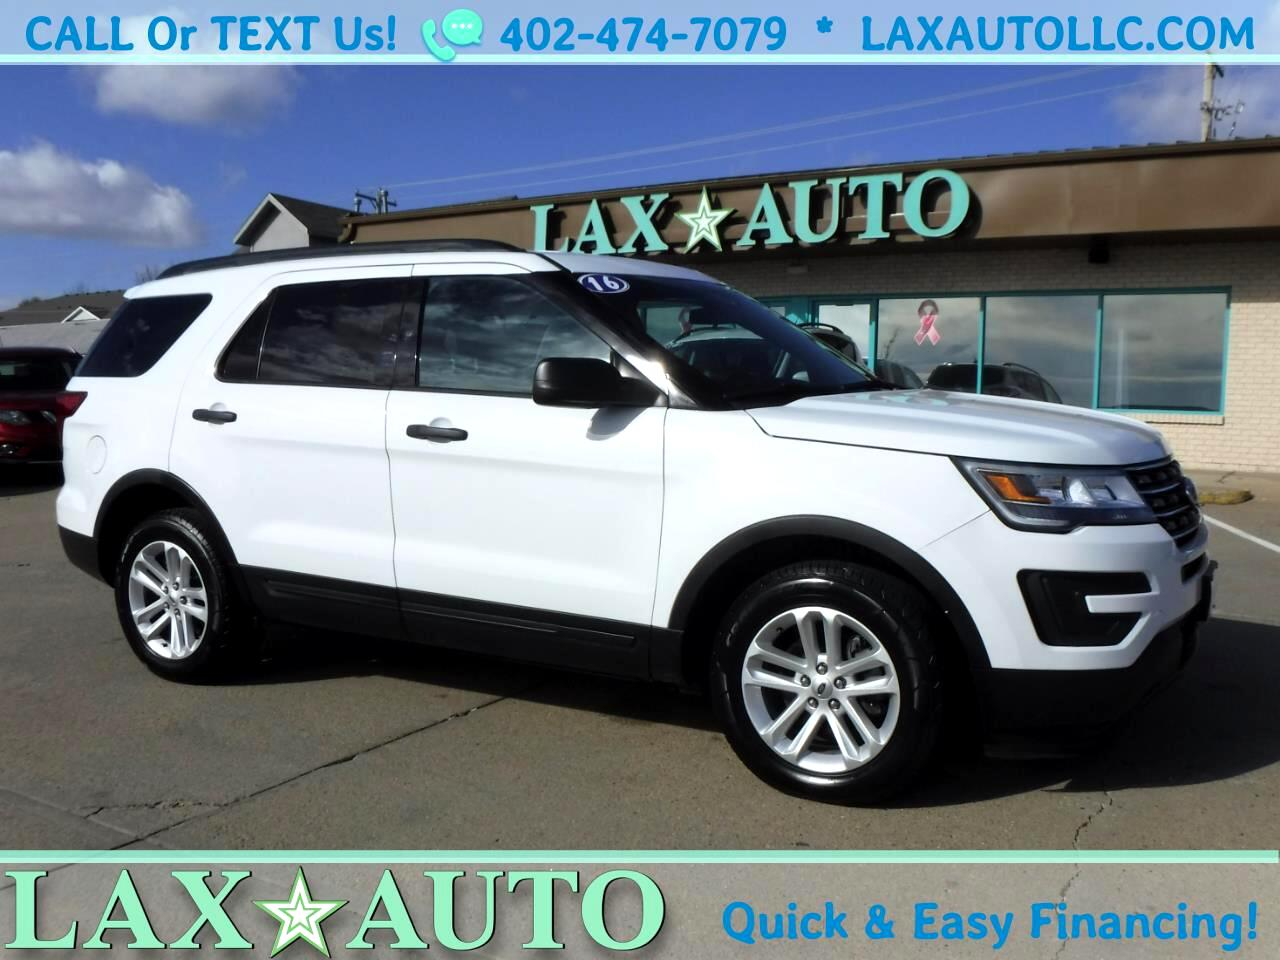 2016 Ford Explorer 4WD * 3rd Row Seat! * 1-Owner Carfax! *White*